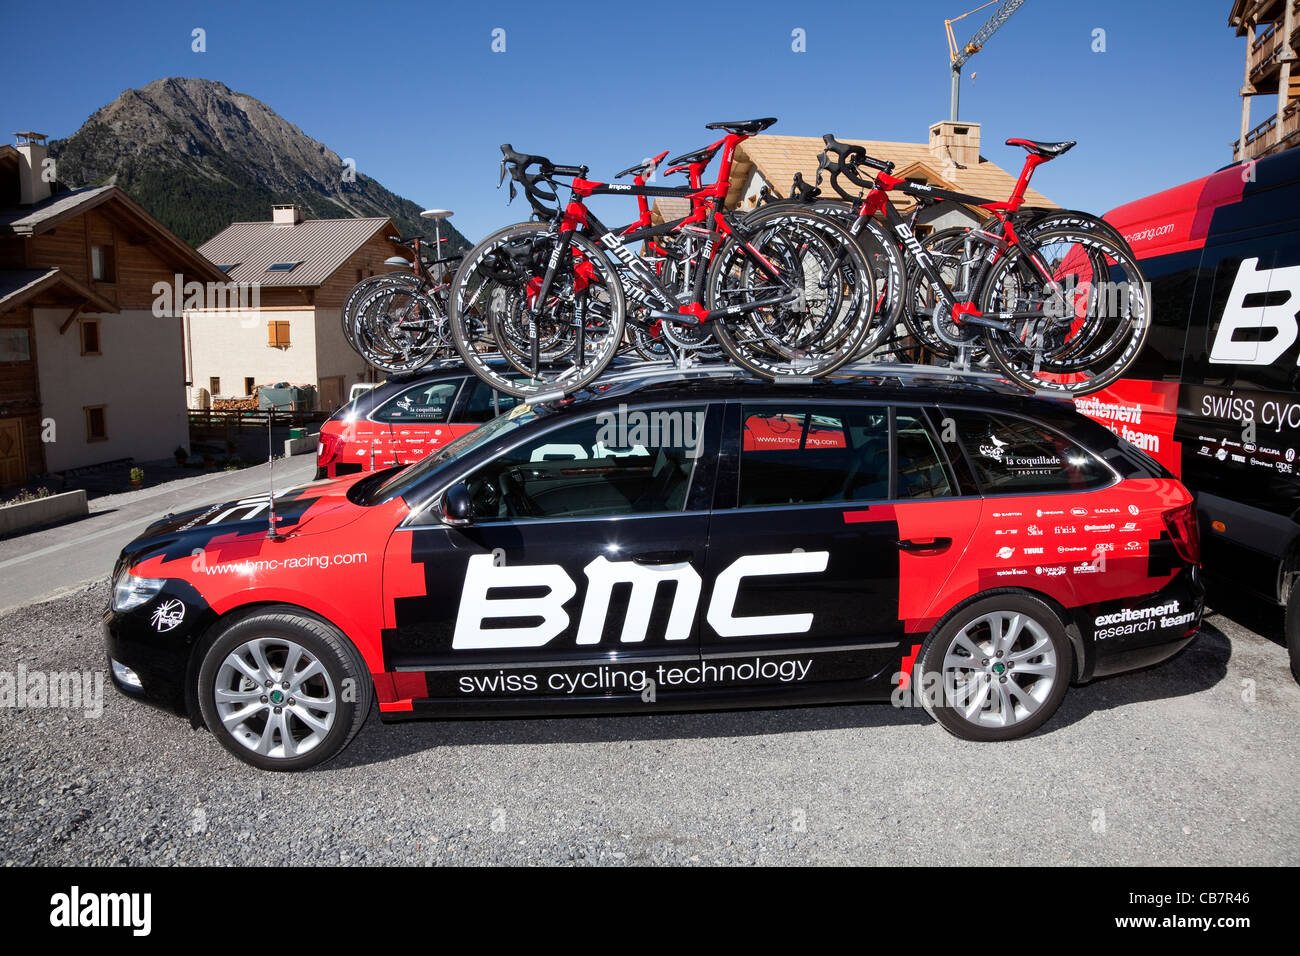 bmc professional cycling team car with team bicycles on top stock photo 41353766 alamy. Black Bedroom Furniture Sets. Home Design Ideas